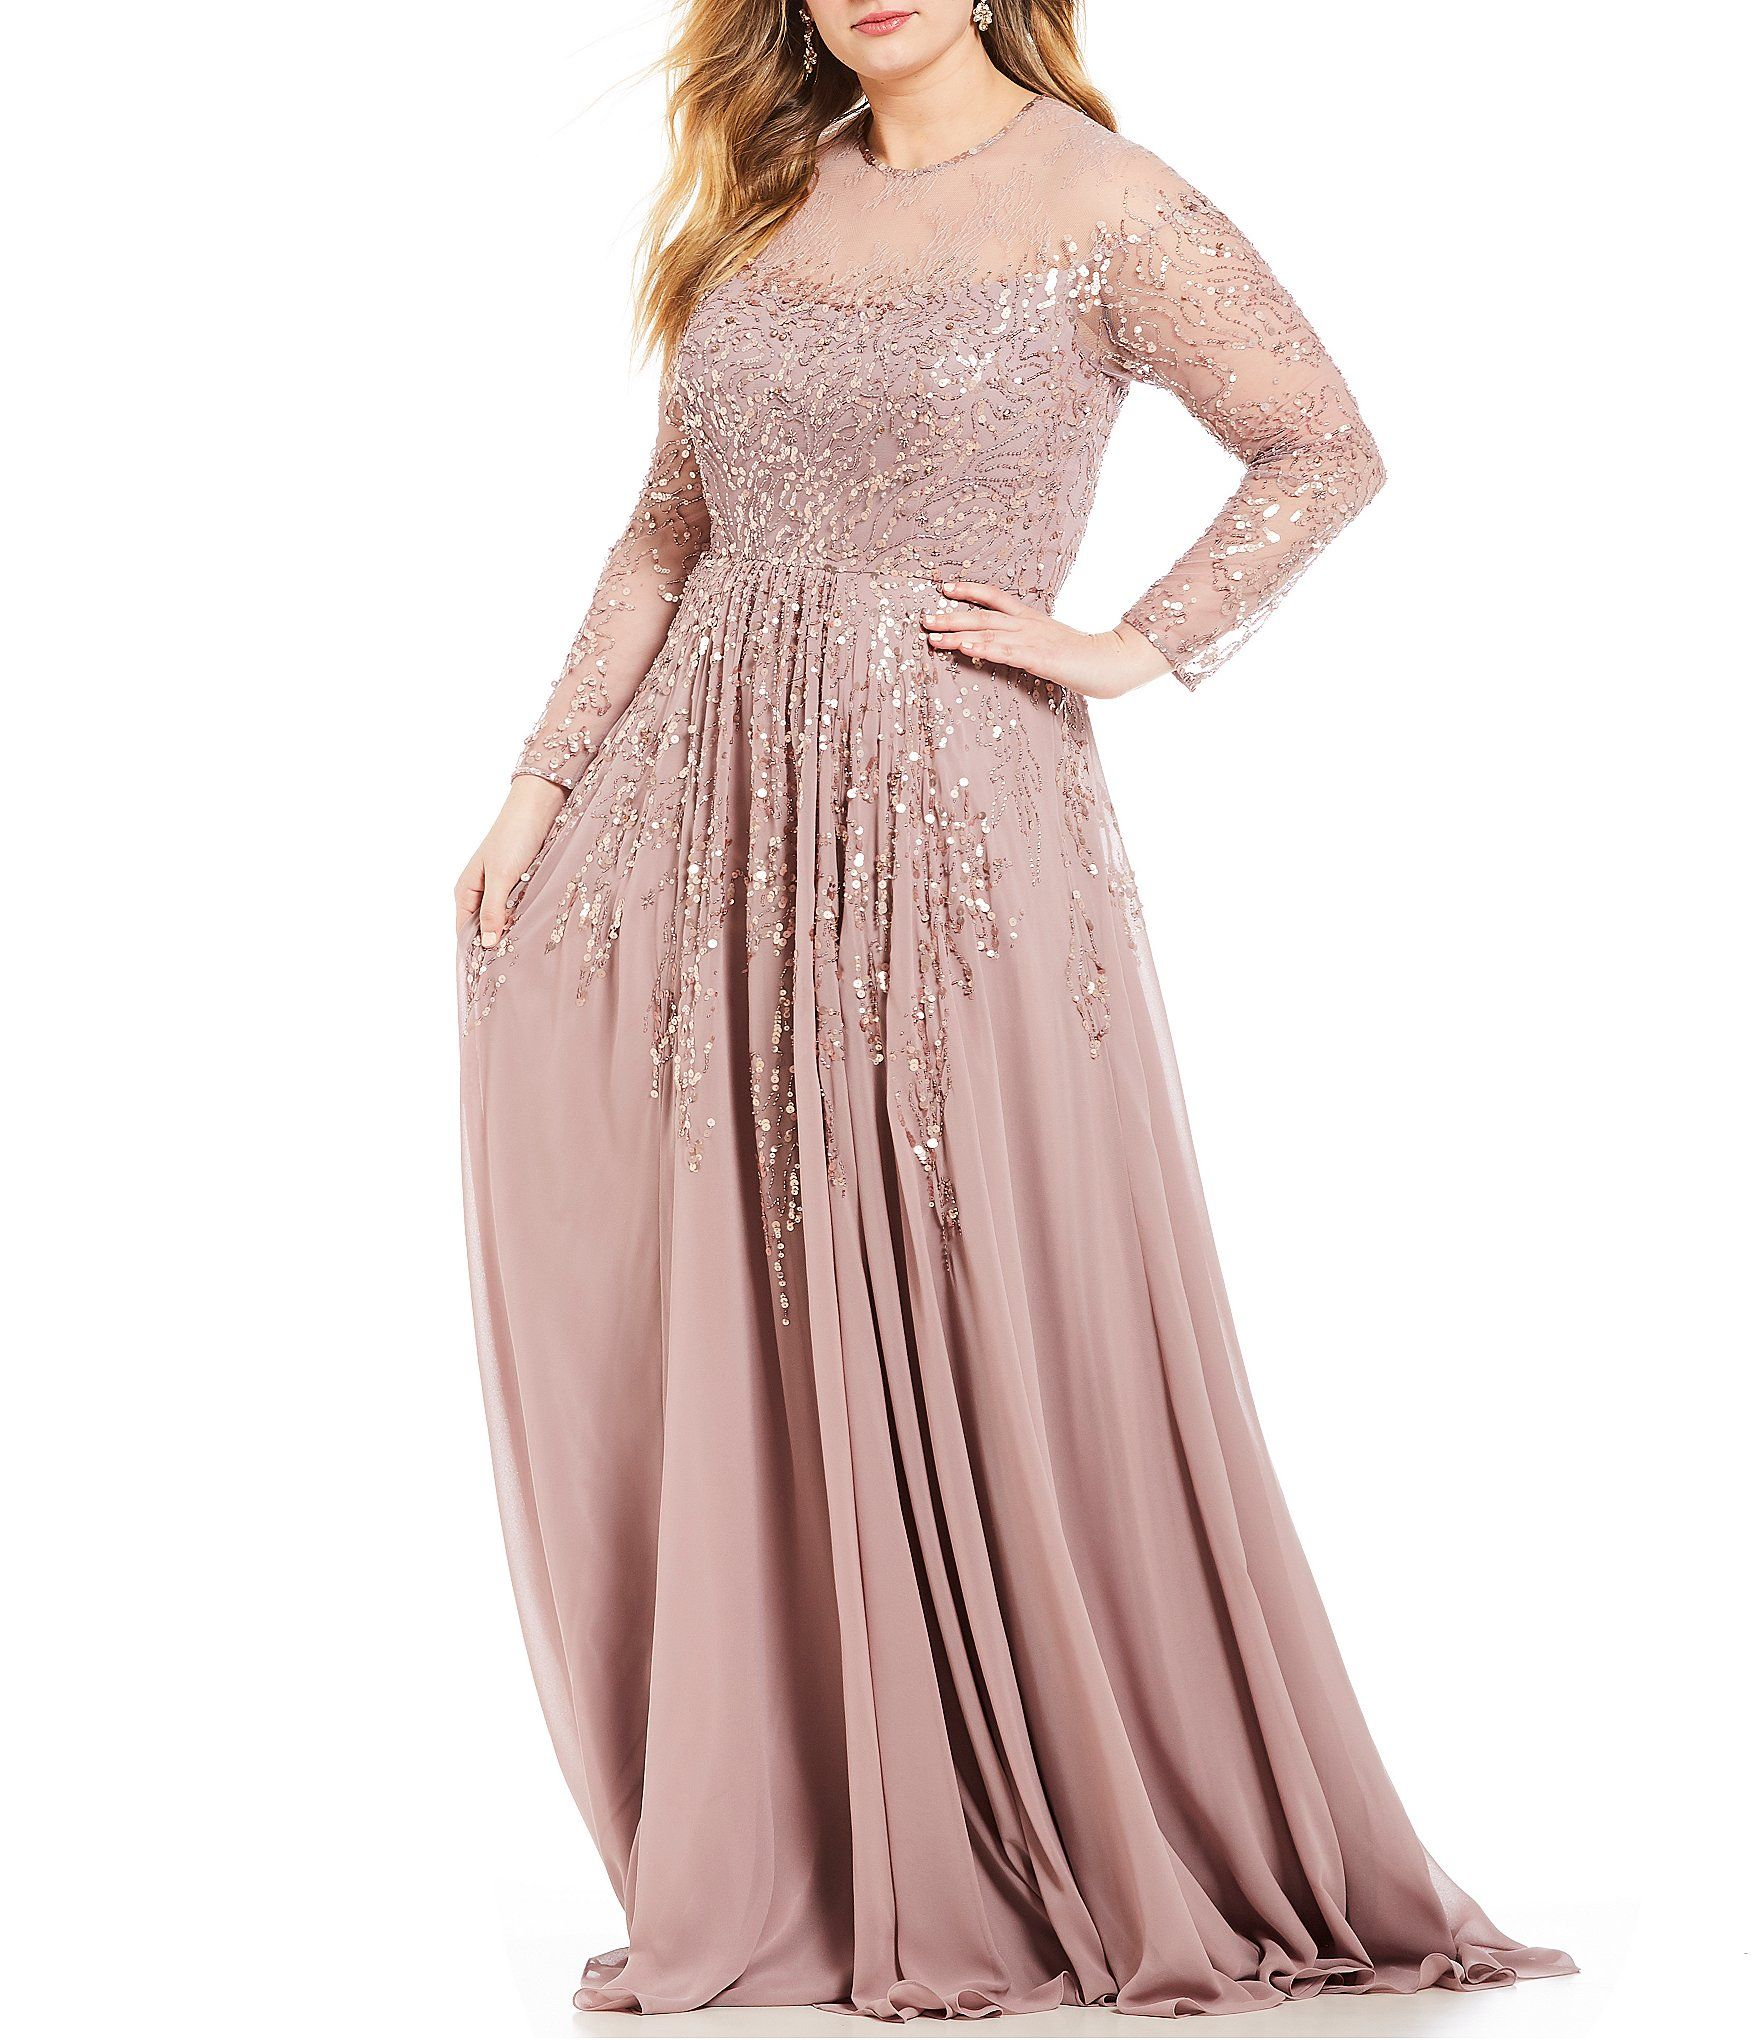 3d5dcdb45e Shop for Terani Couture Plus Size Sheer Sleeve Chiffon Gown at Dillards.com.  Visit Dillards.com to find clothing